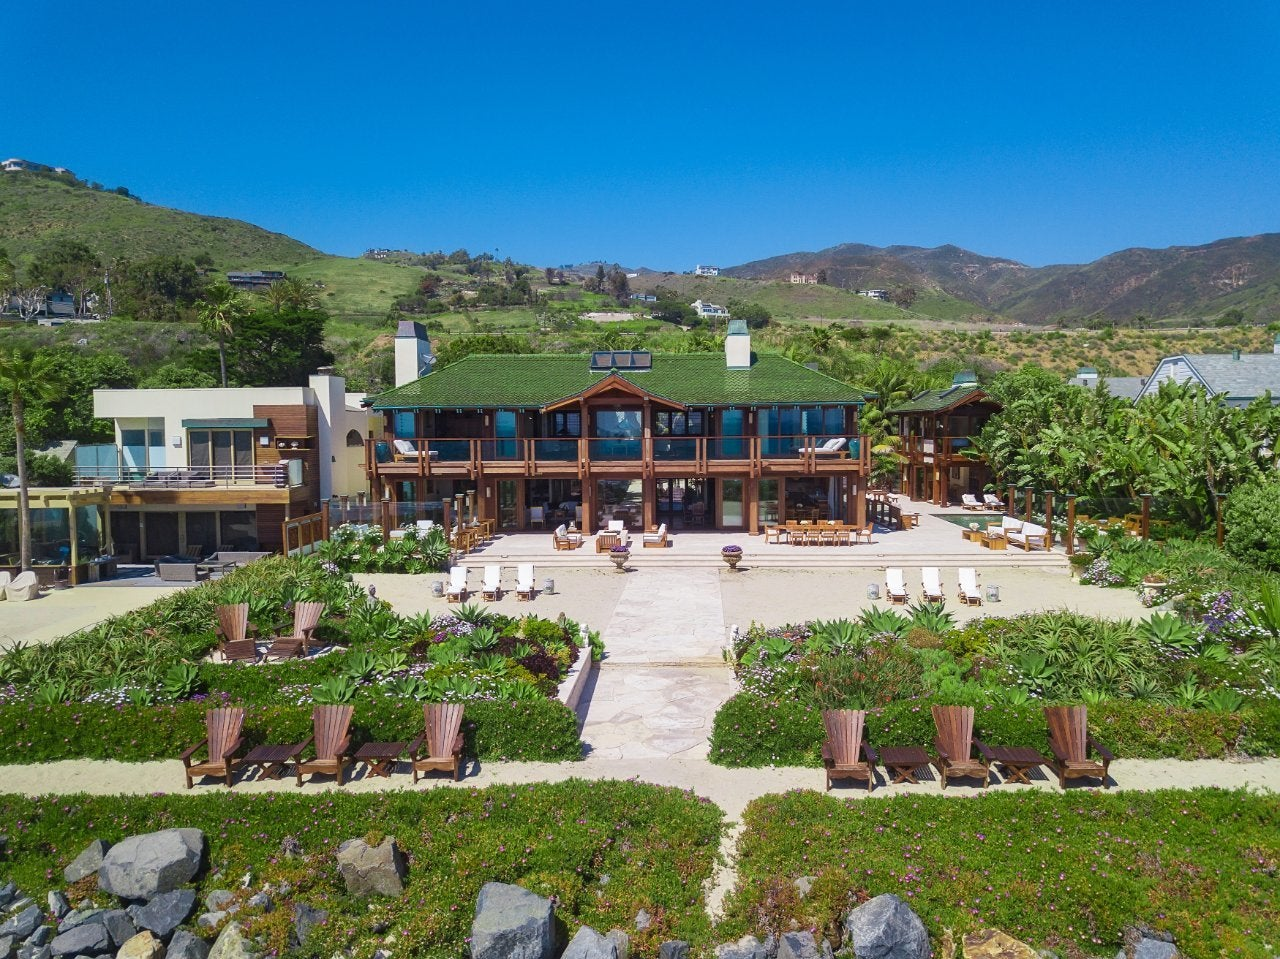 Pierce Brosnan Malibu Beach Orchid House 1